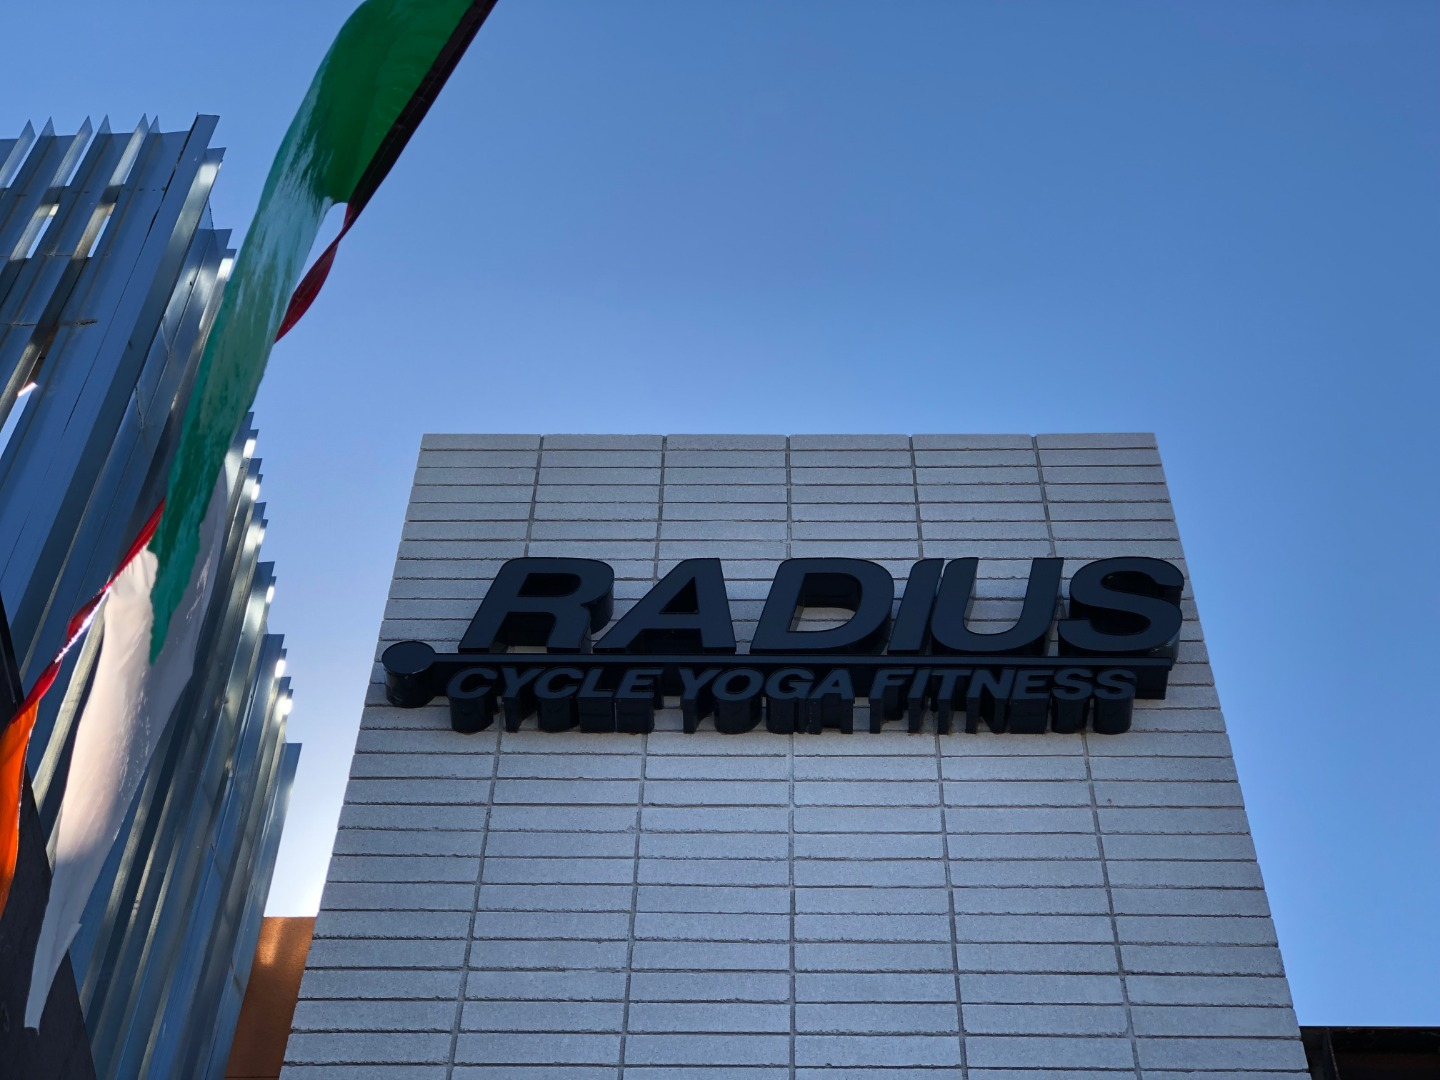 Update: Radius Fitness Temporary Closure & Support Image